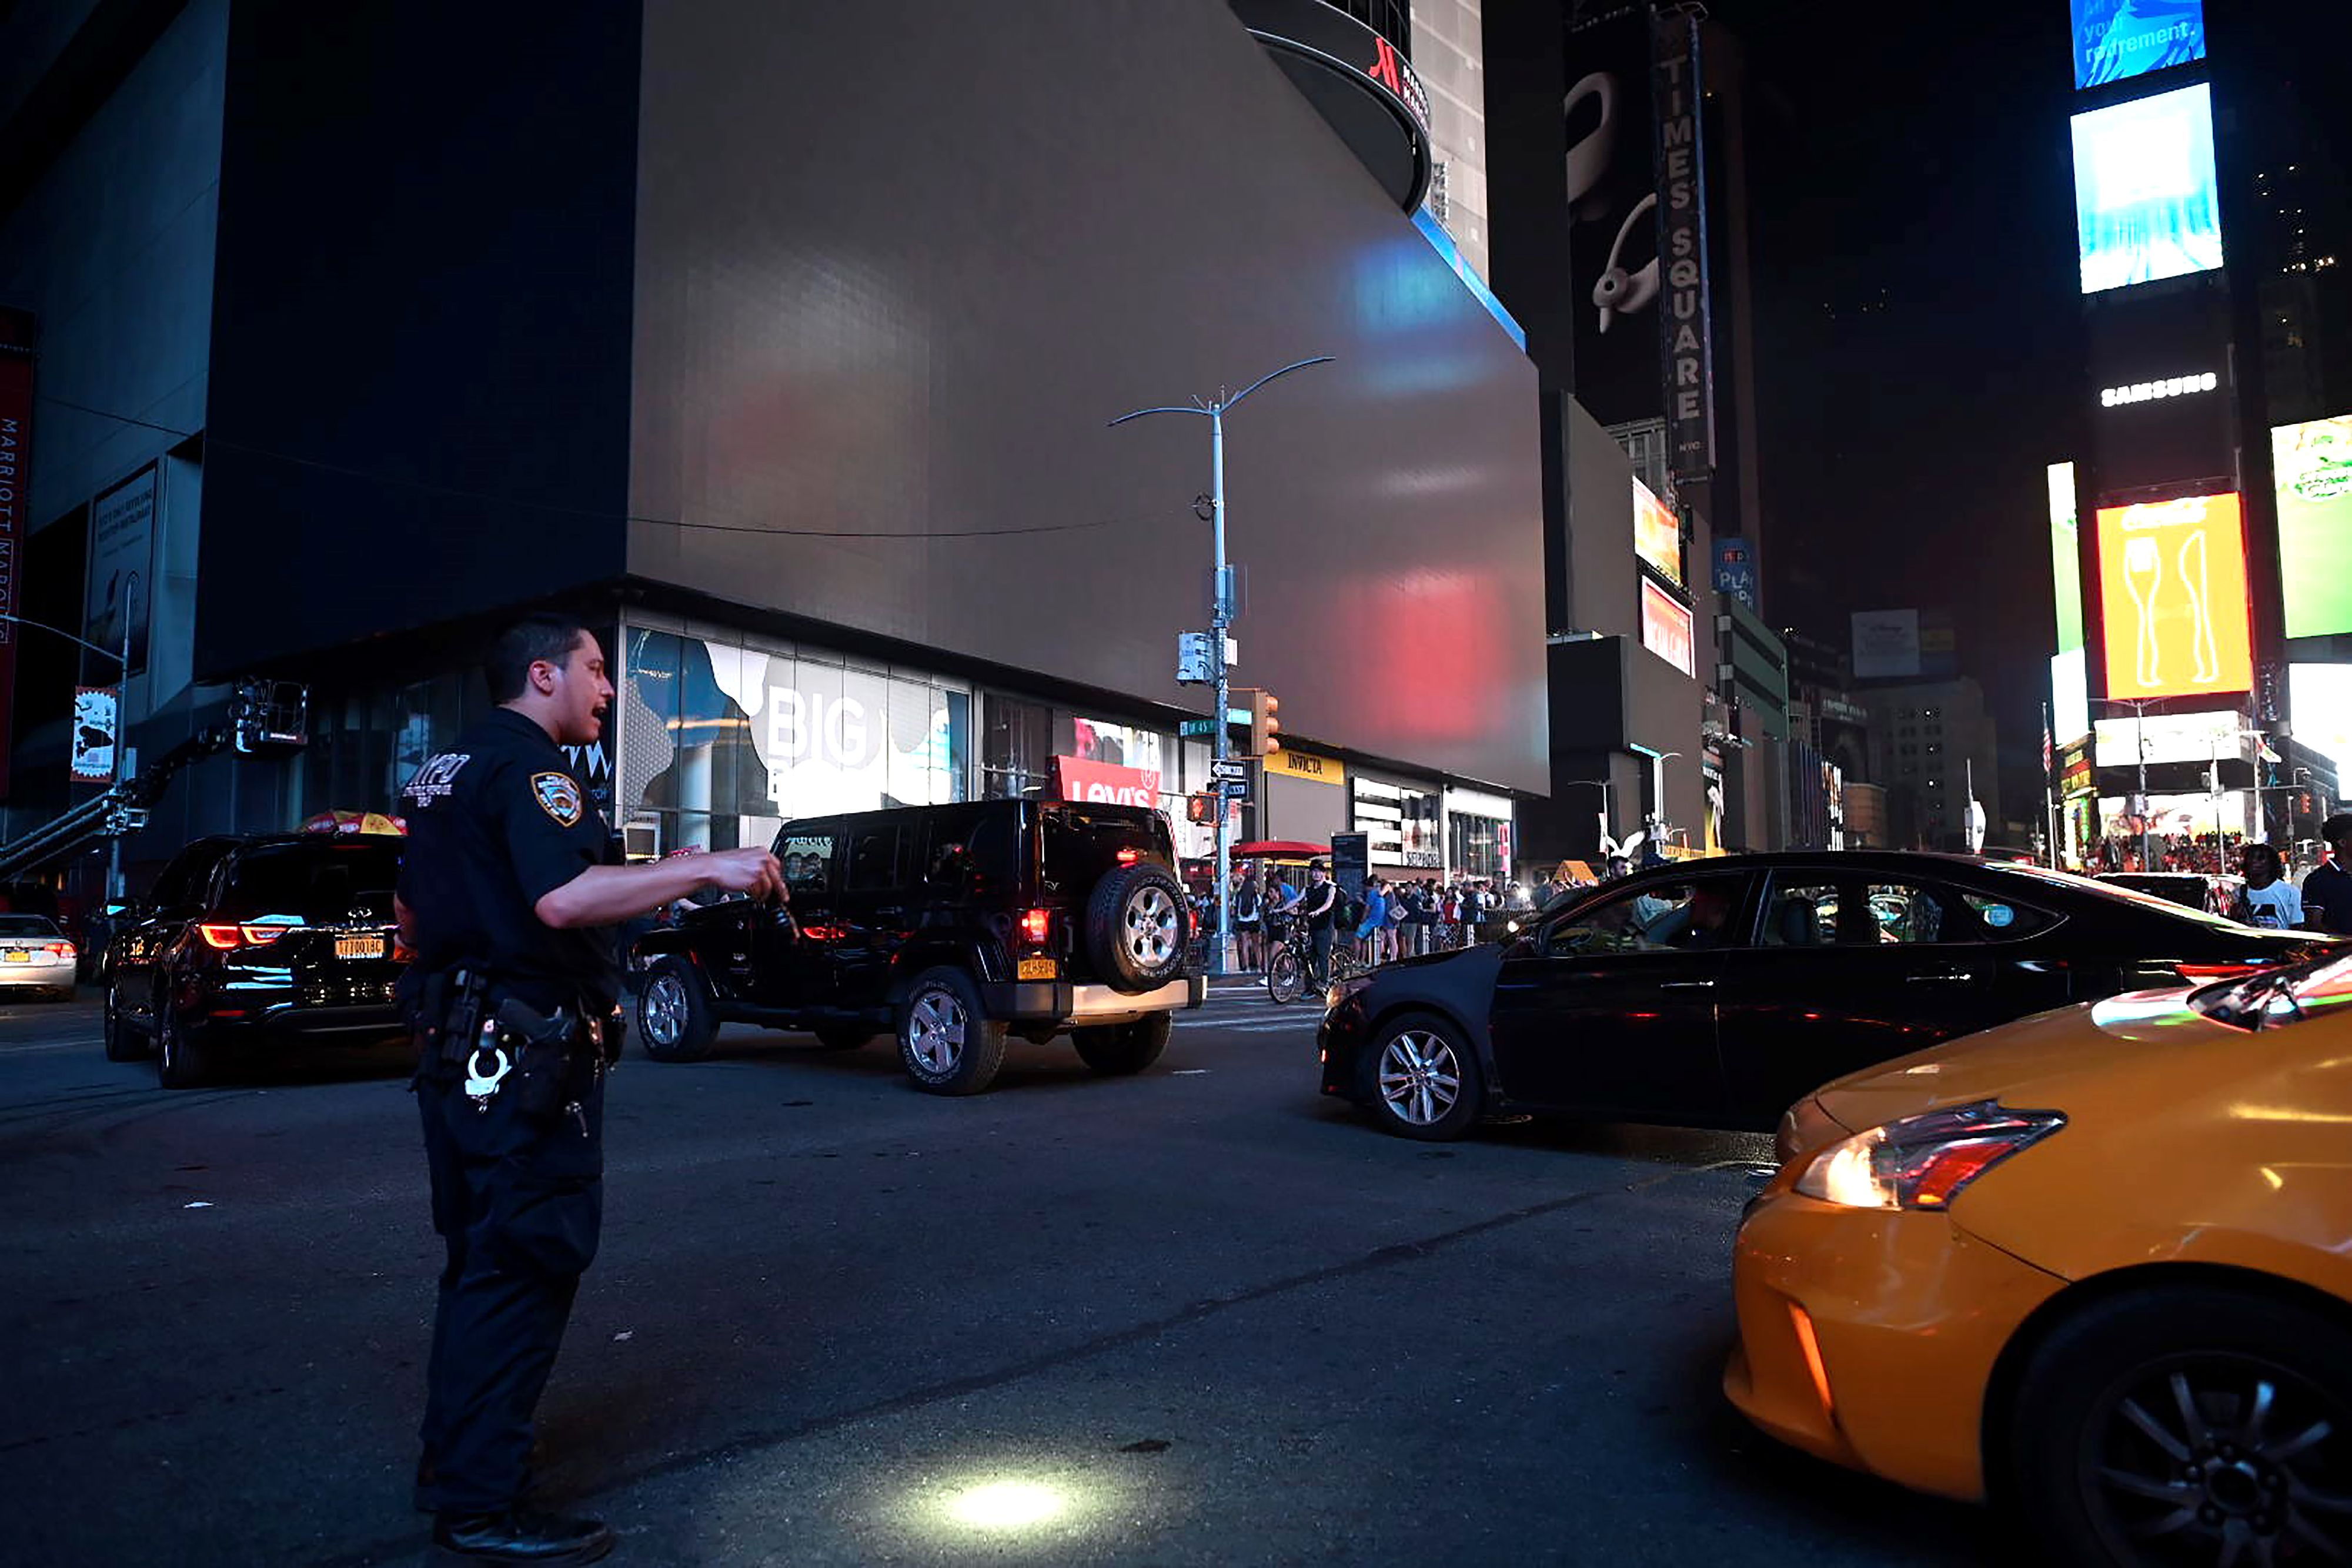 Power restored in Manhattan after transformer fire cuts juice to Times Square, Rockefeller Plaza - The Morning Call